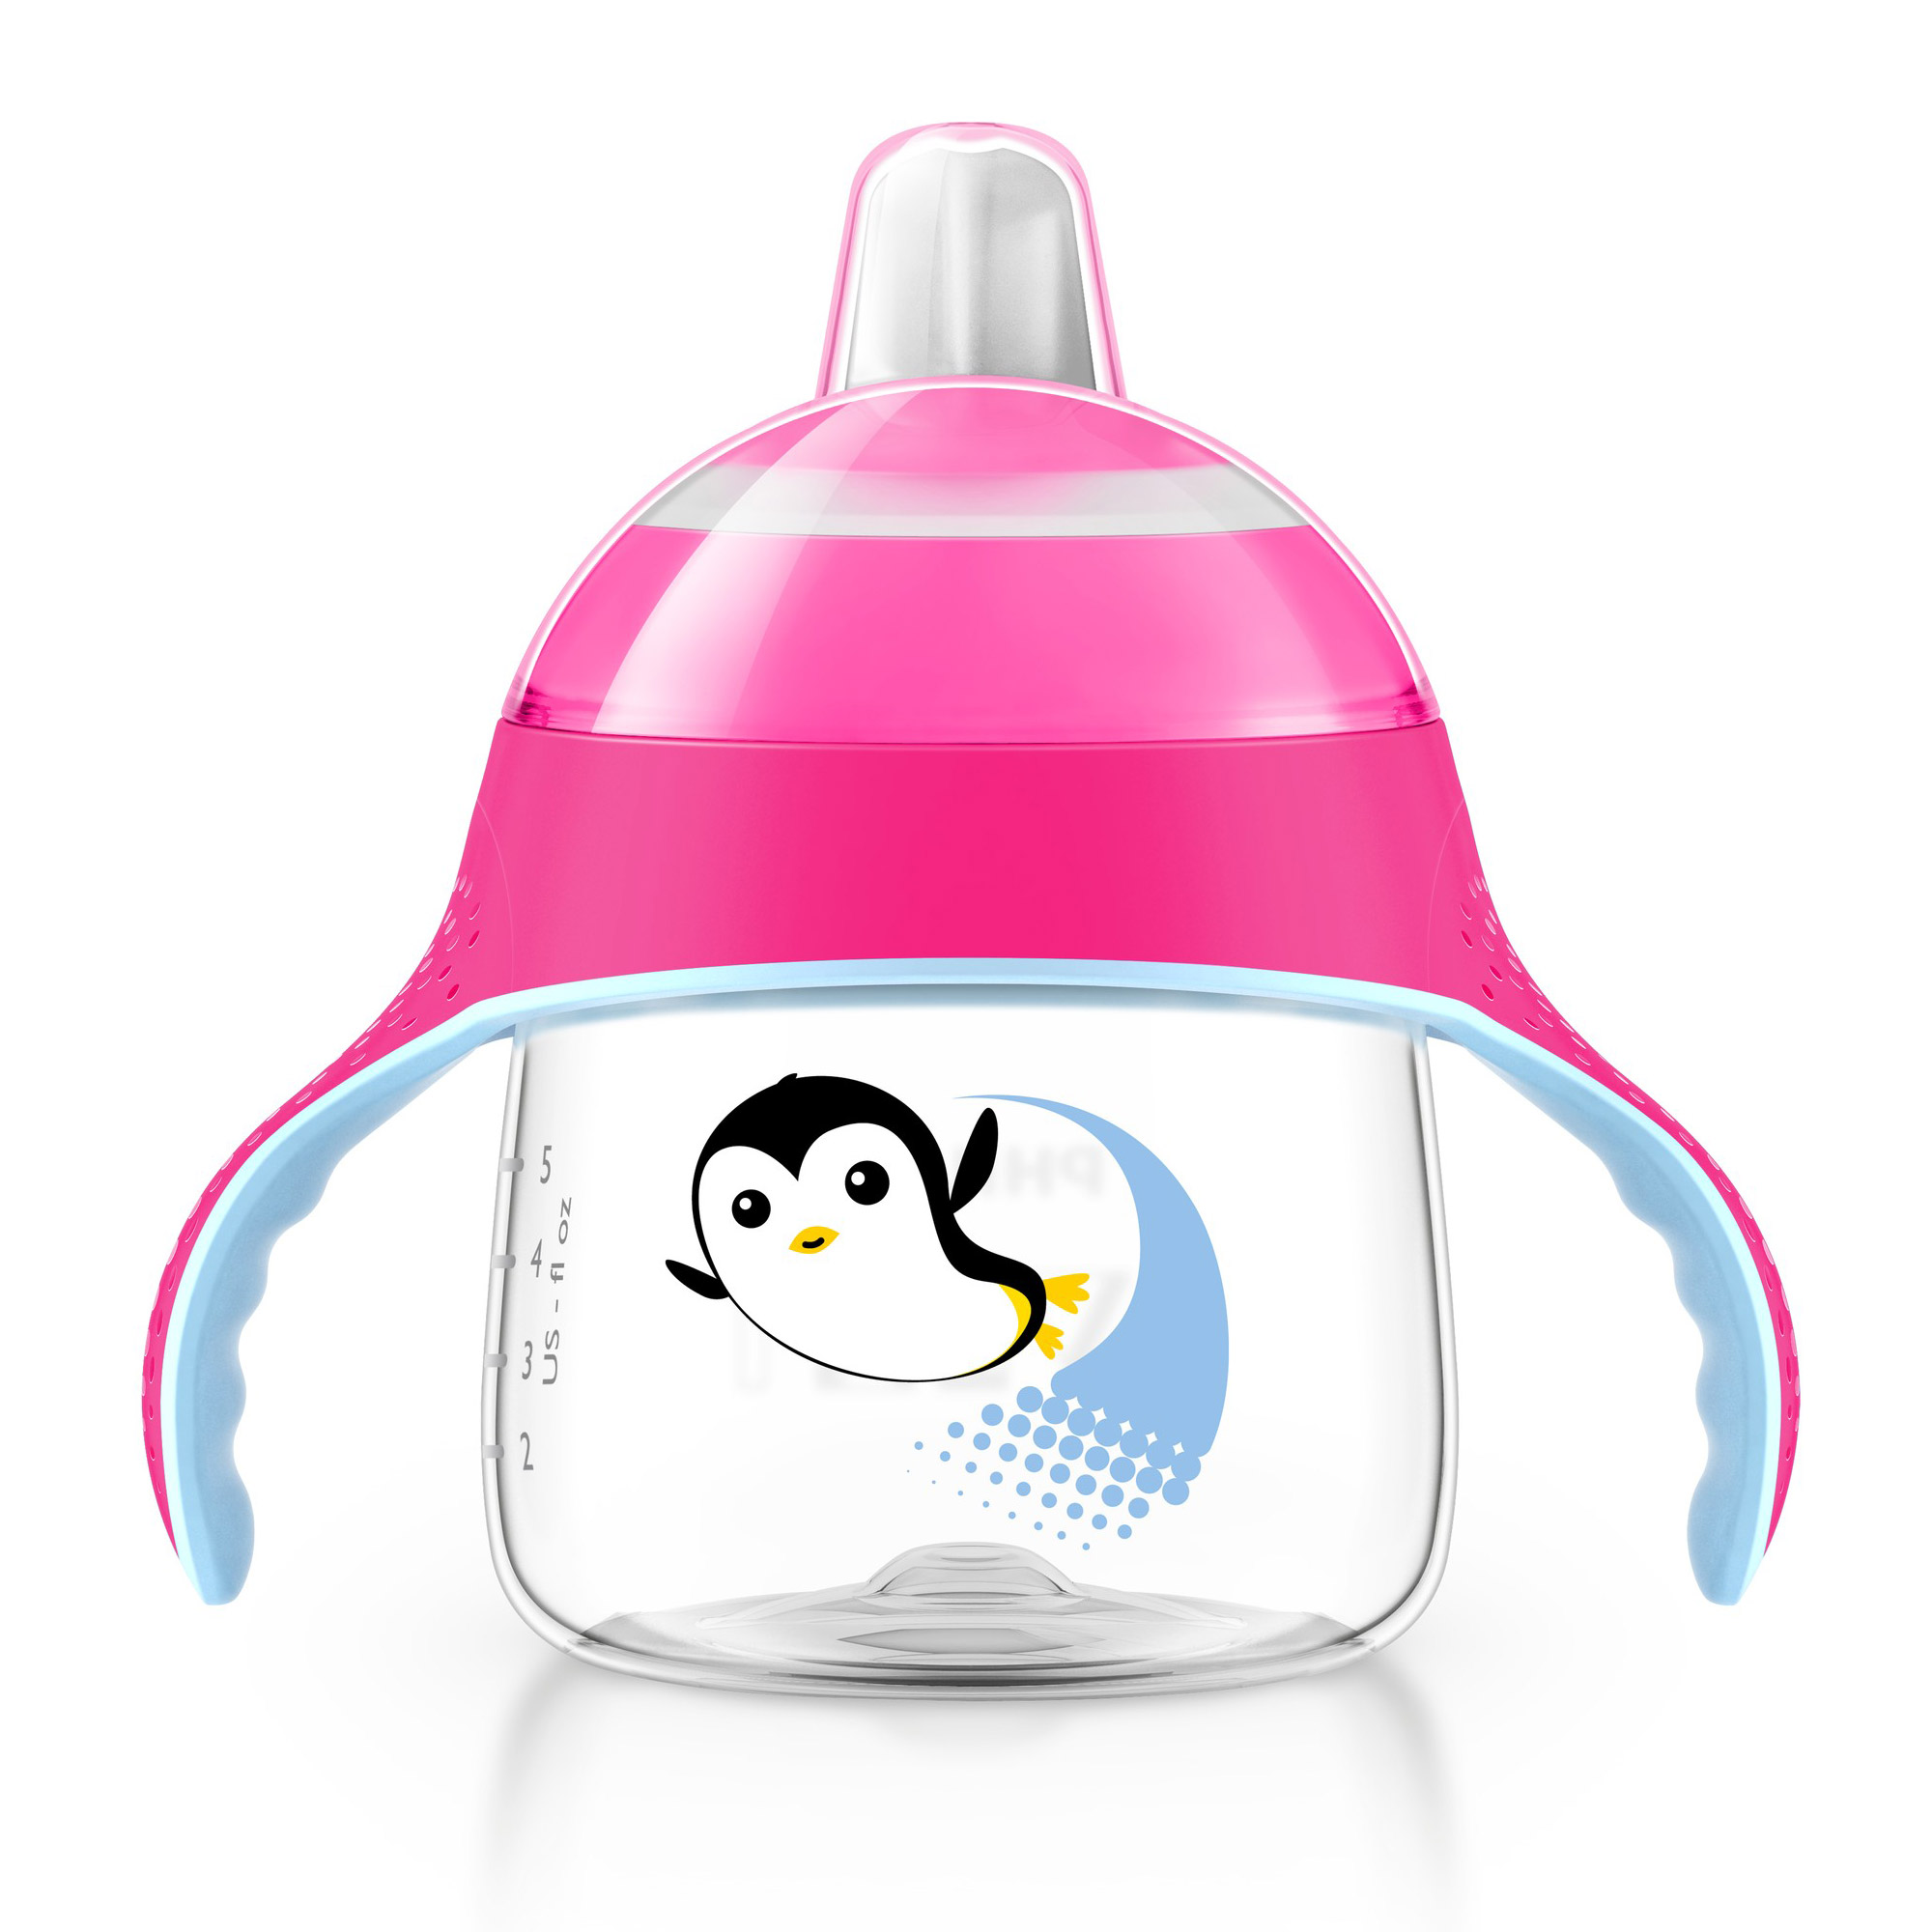 Tasse bec anti-fuite pingouin Rose 200 ml de Philips AVENT